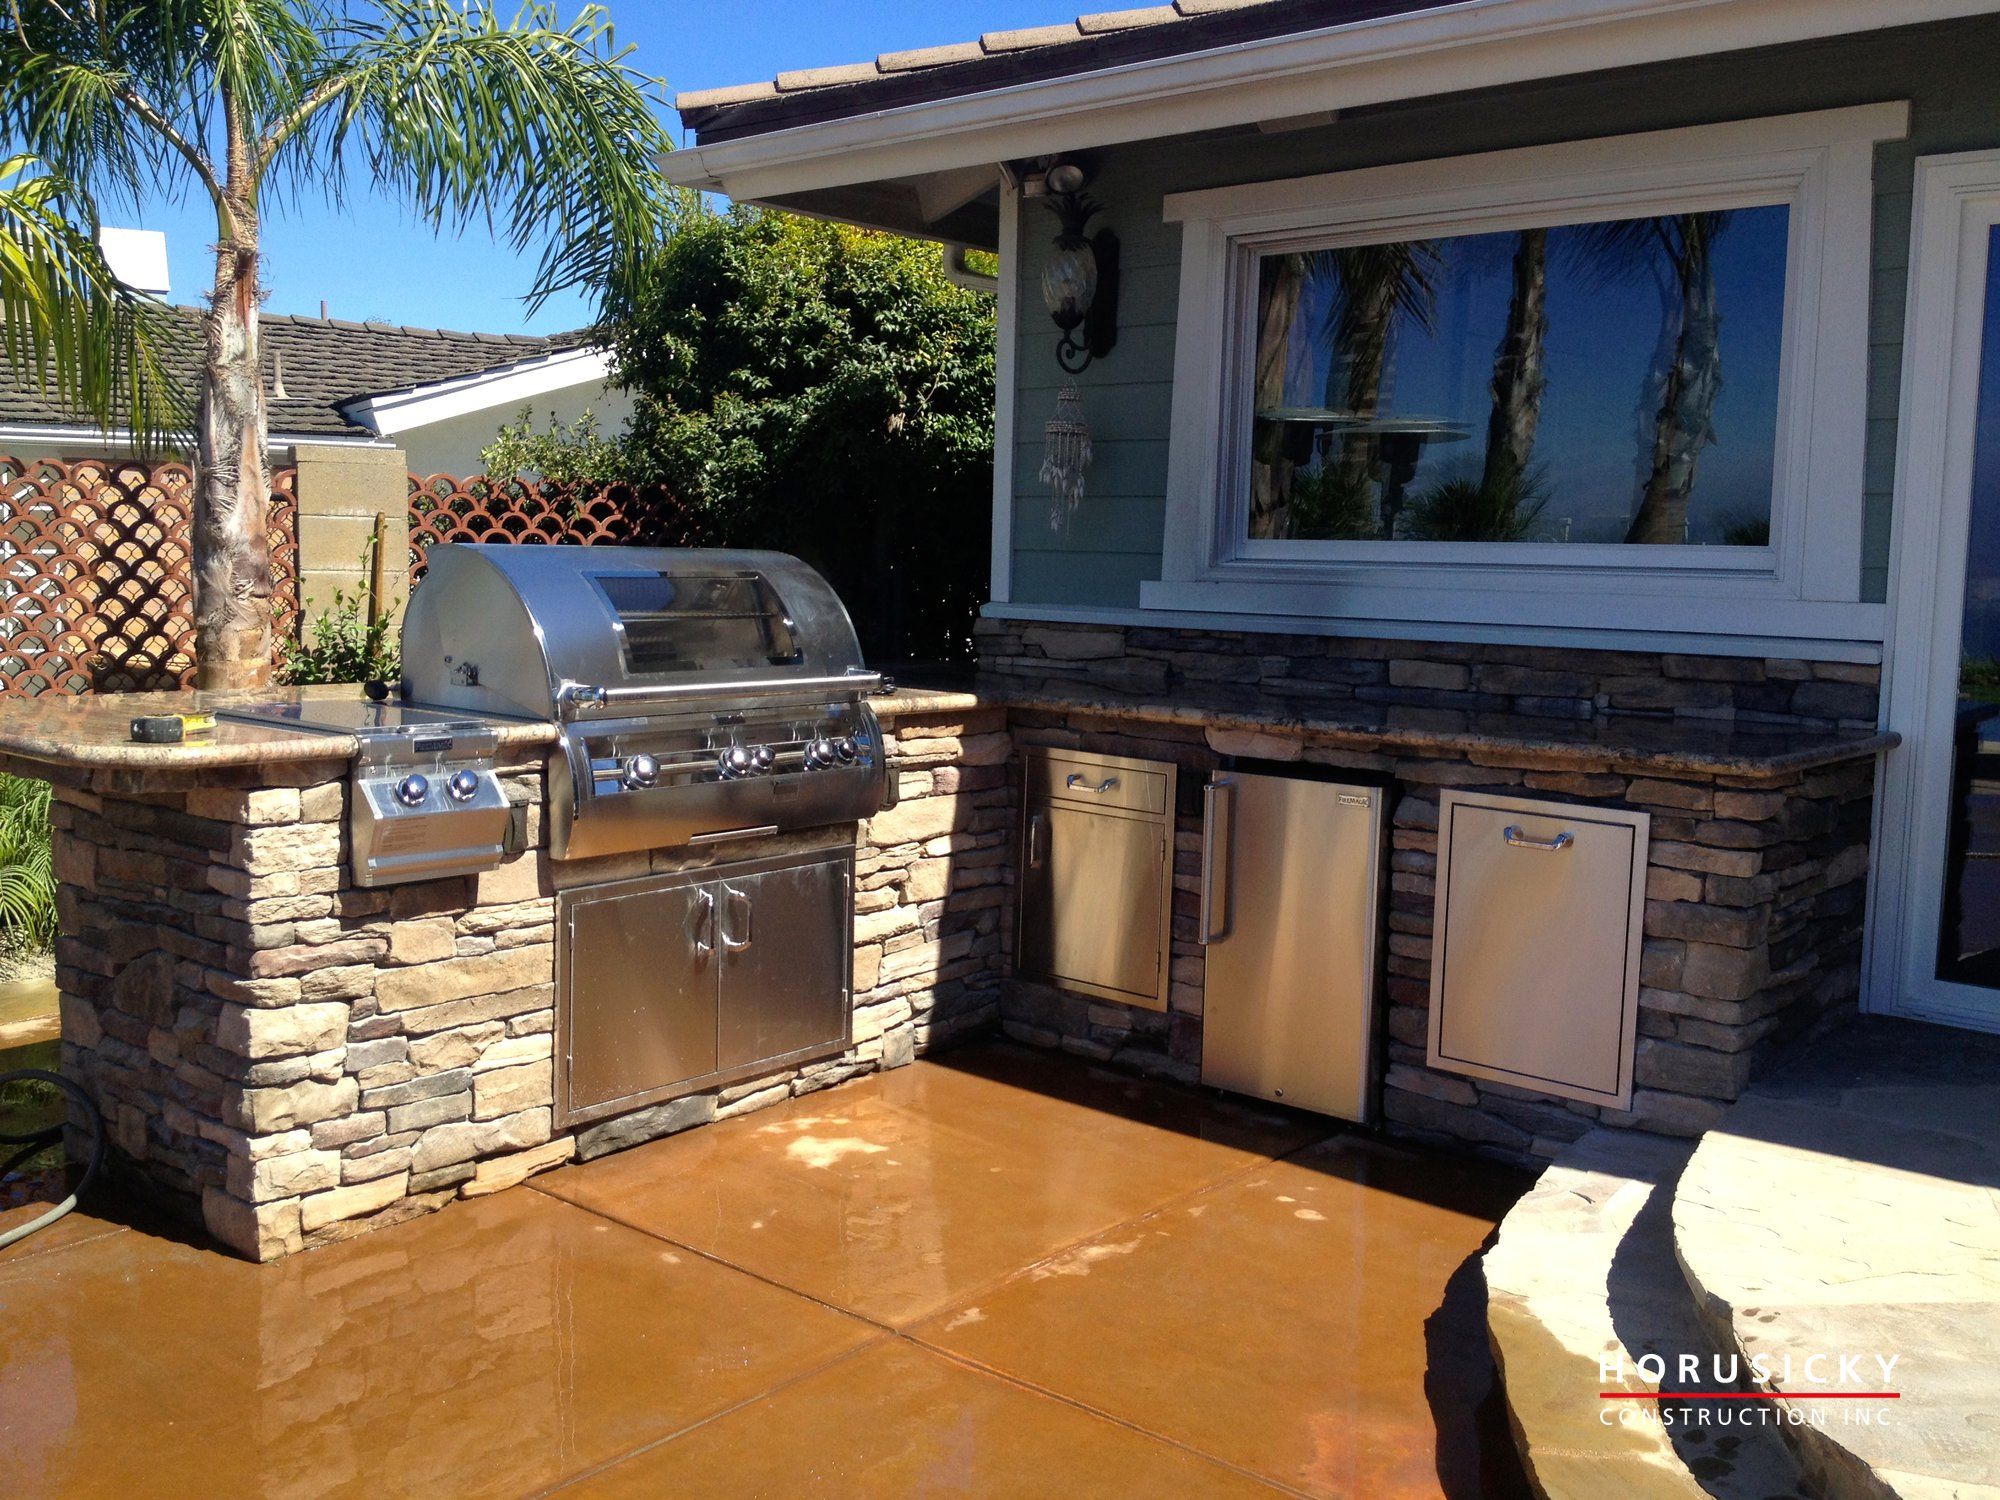 outdoor kitchens and bbq grills horusicky construction